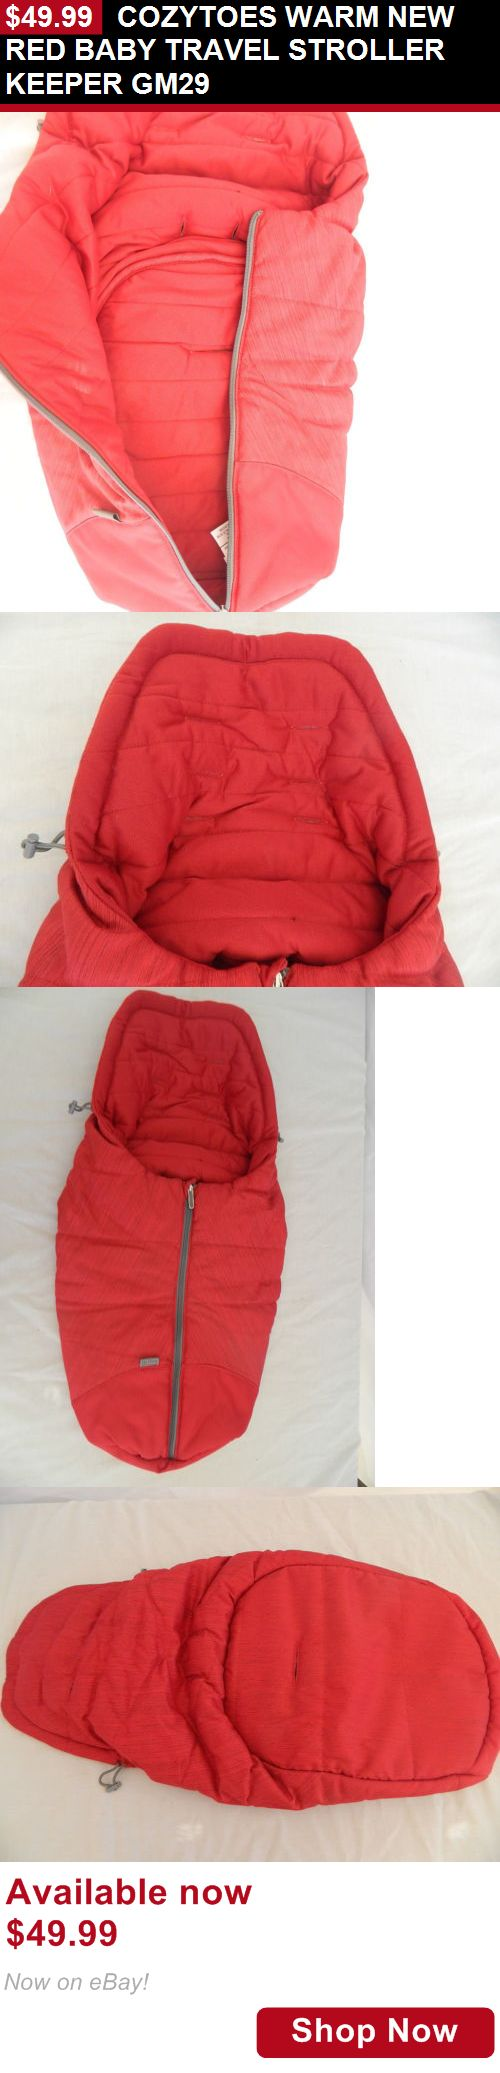 Other Strollers: Cozytoes Warm New Red Baby Travel Stroller Keeper Gm29 BUY IT NOW ONLY: $49.99